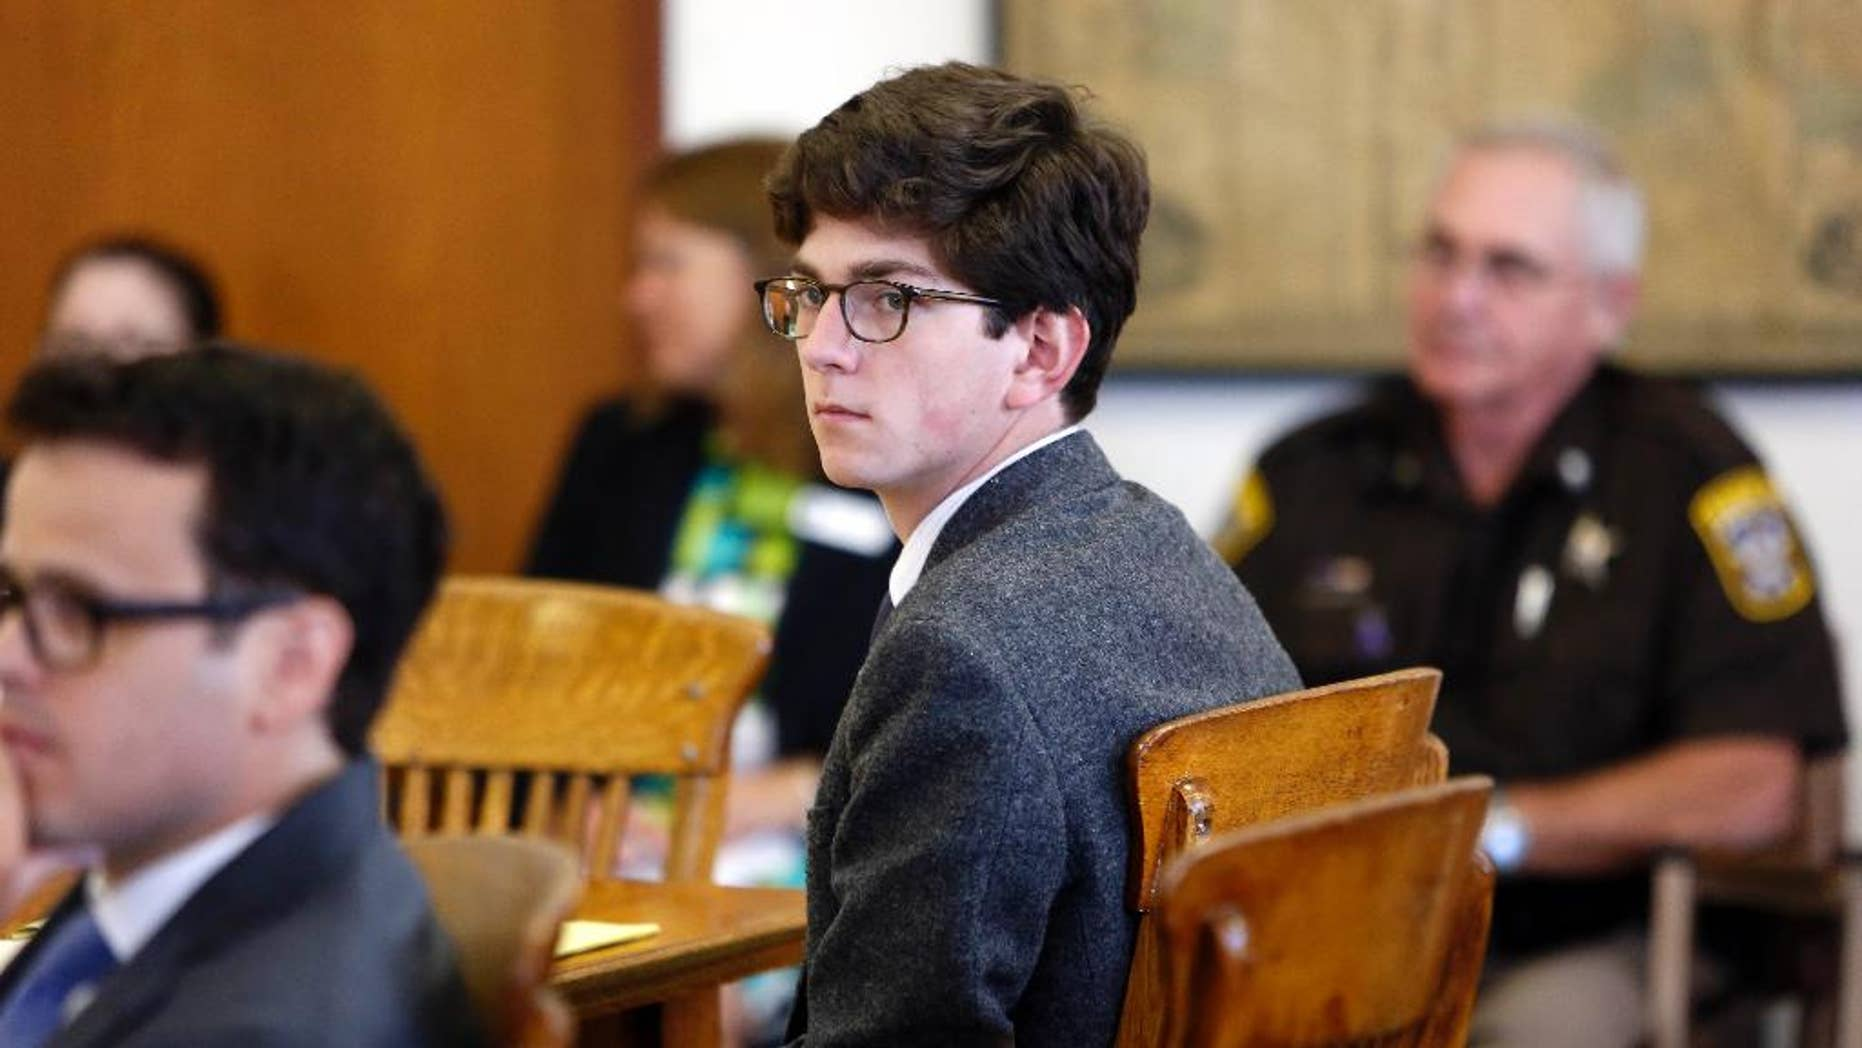 FILE - In this Tuesday Aug. 18, 2015 file photo, St. Paul's School student Owen Labrie looks around the courtroom at the start of his trial. Labrie was convicted of sexually assaulting a 15-year-old freshman girl as part of a game of sexual conquest. Labrie's new lawyer has submitted arguments for a new trial, saying the emails between Labrie and the 15-year-old girl don't support his computer crime conviction because they were hosted by an intranet server, an weren't sent through the internet, AP Photo/Jim Cole, File)